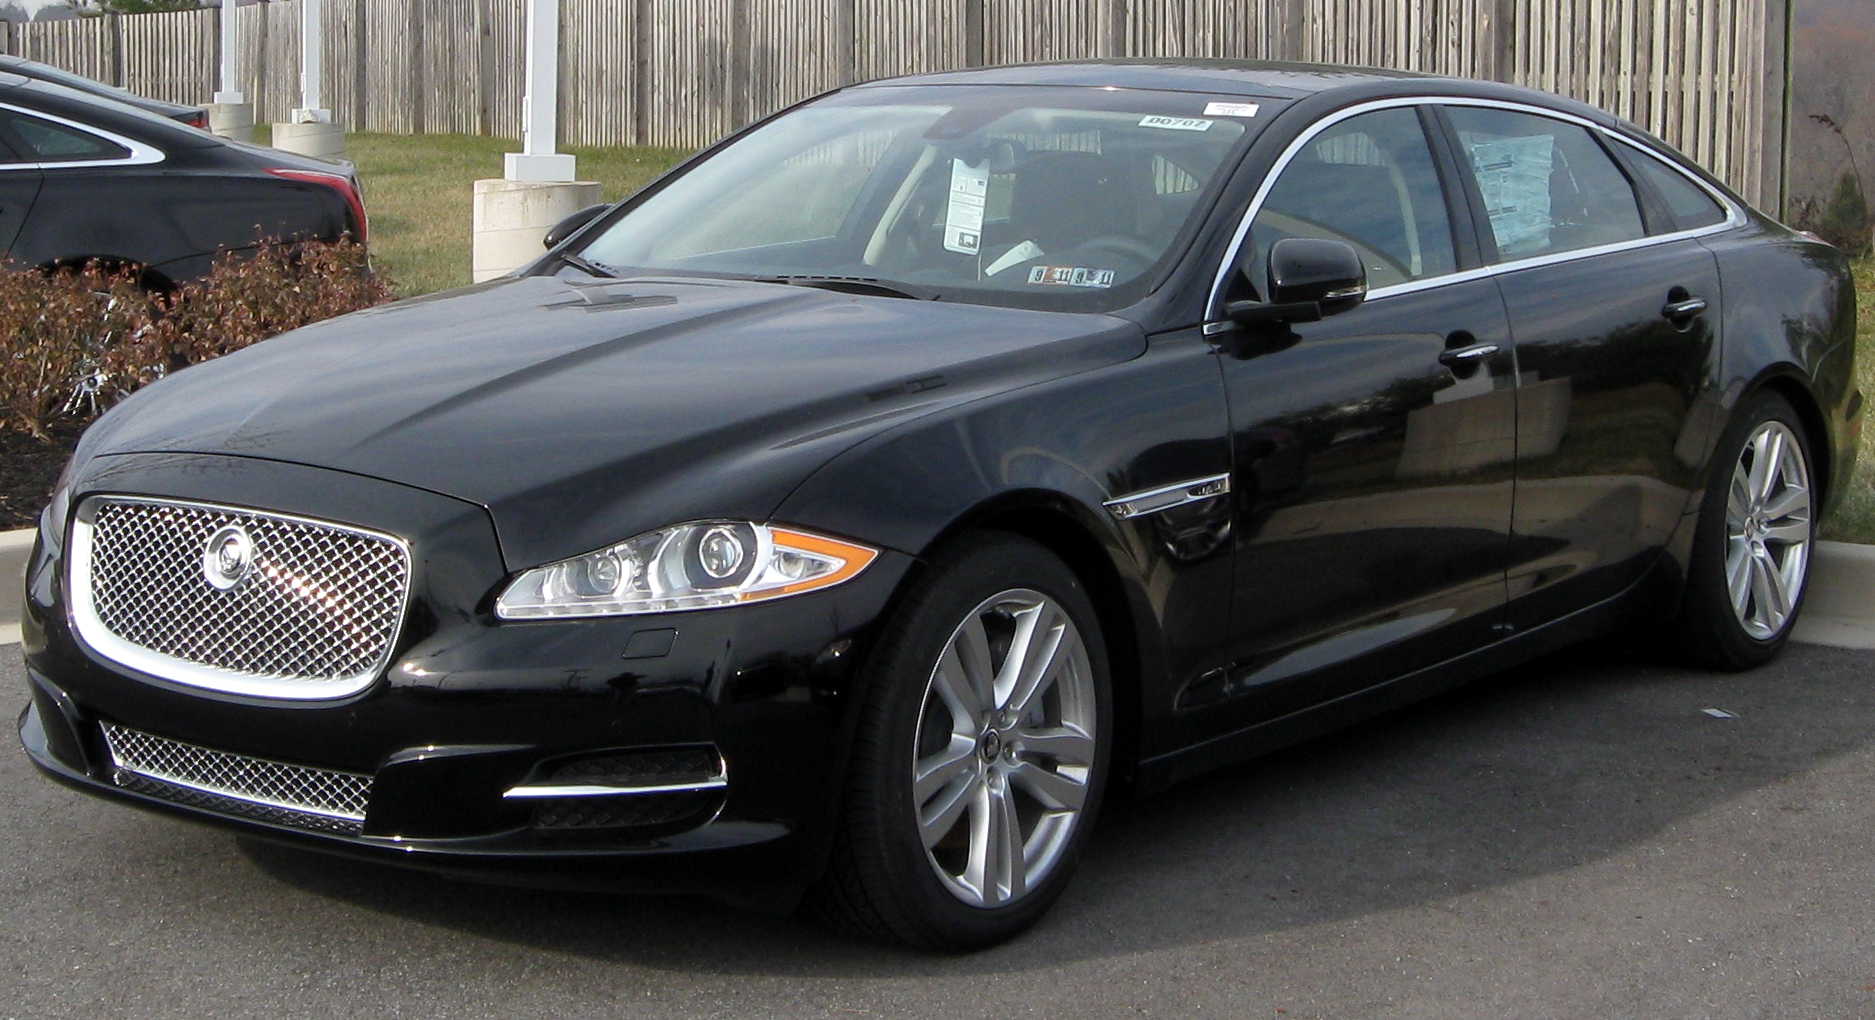 The Jaguar XJ.